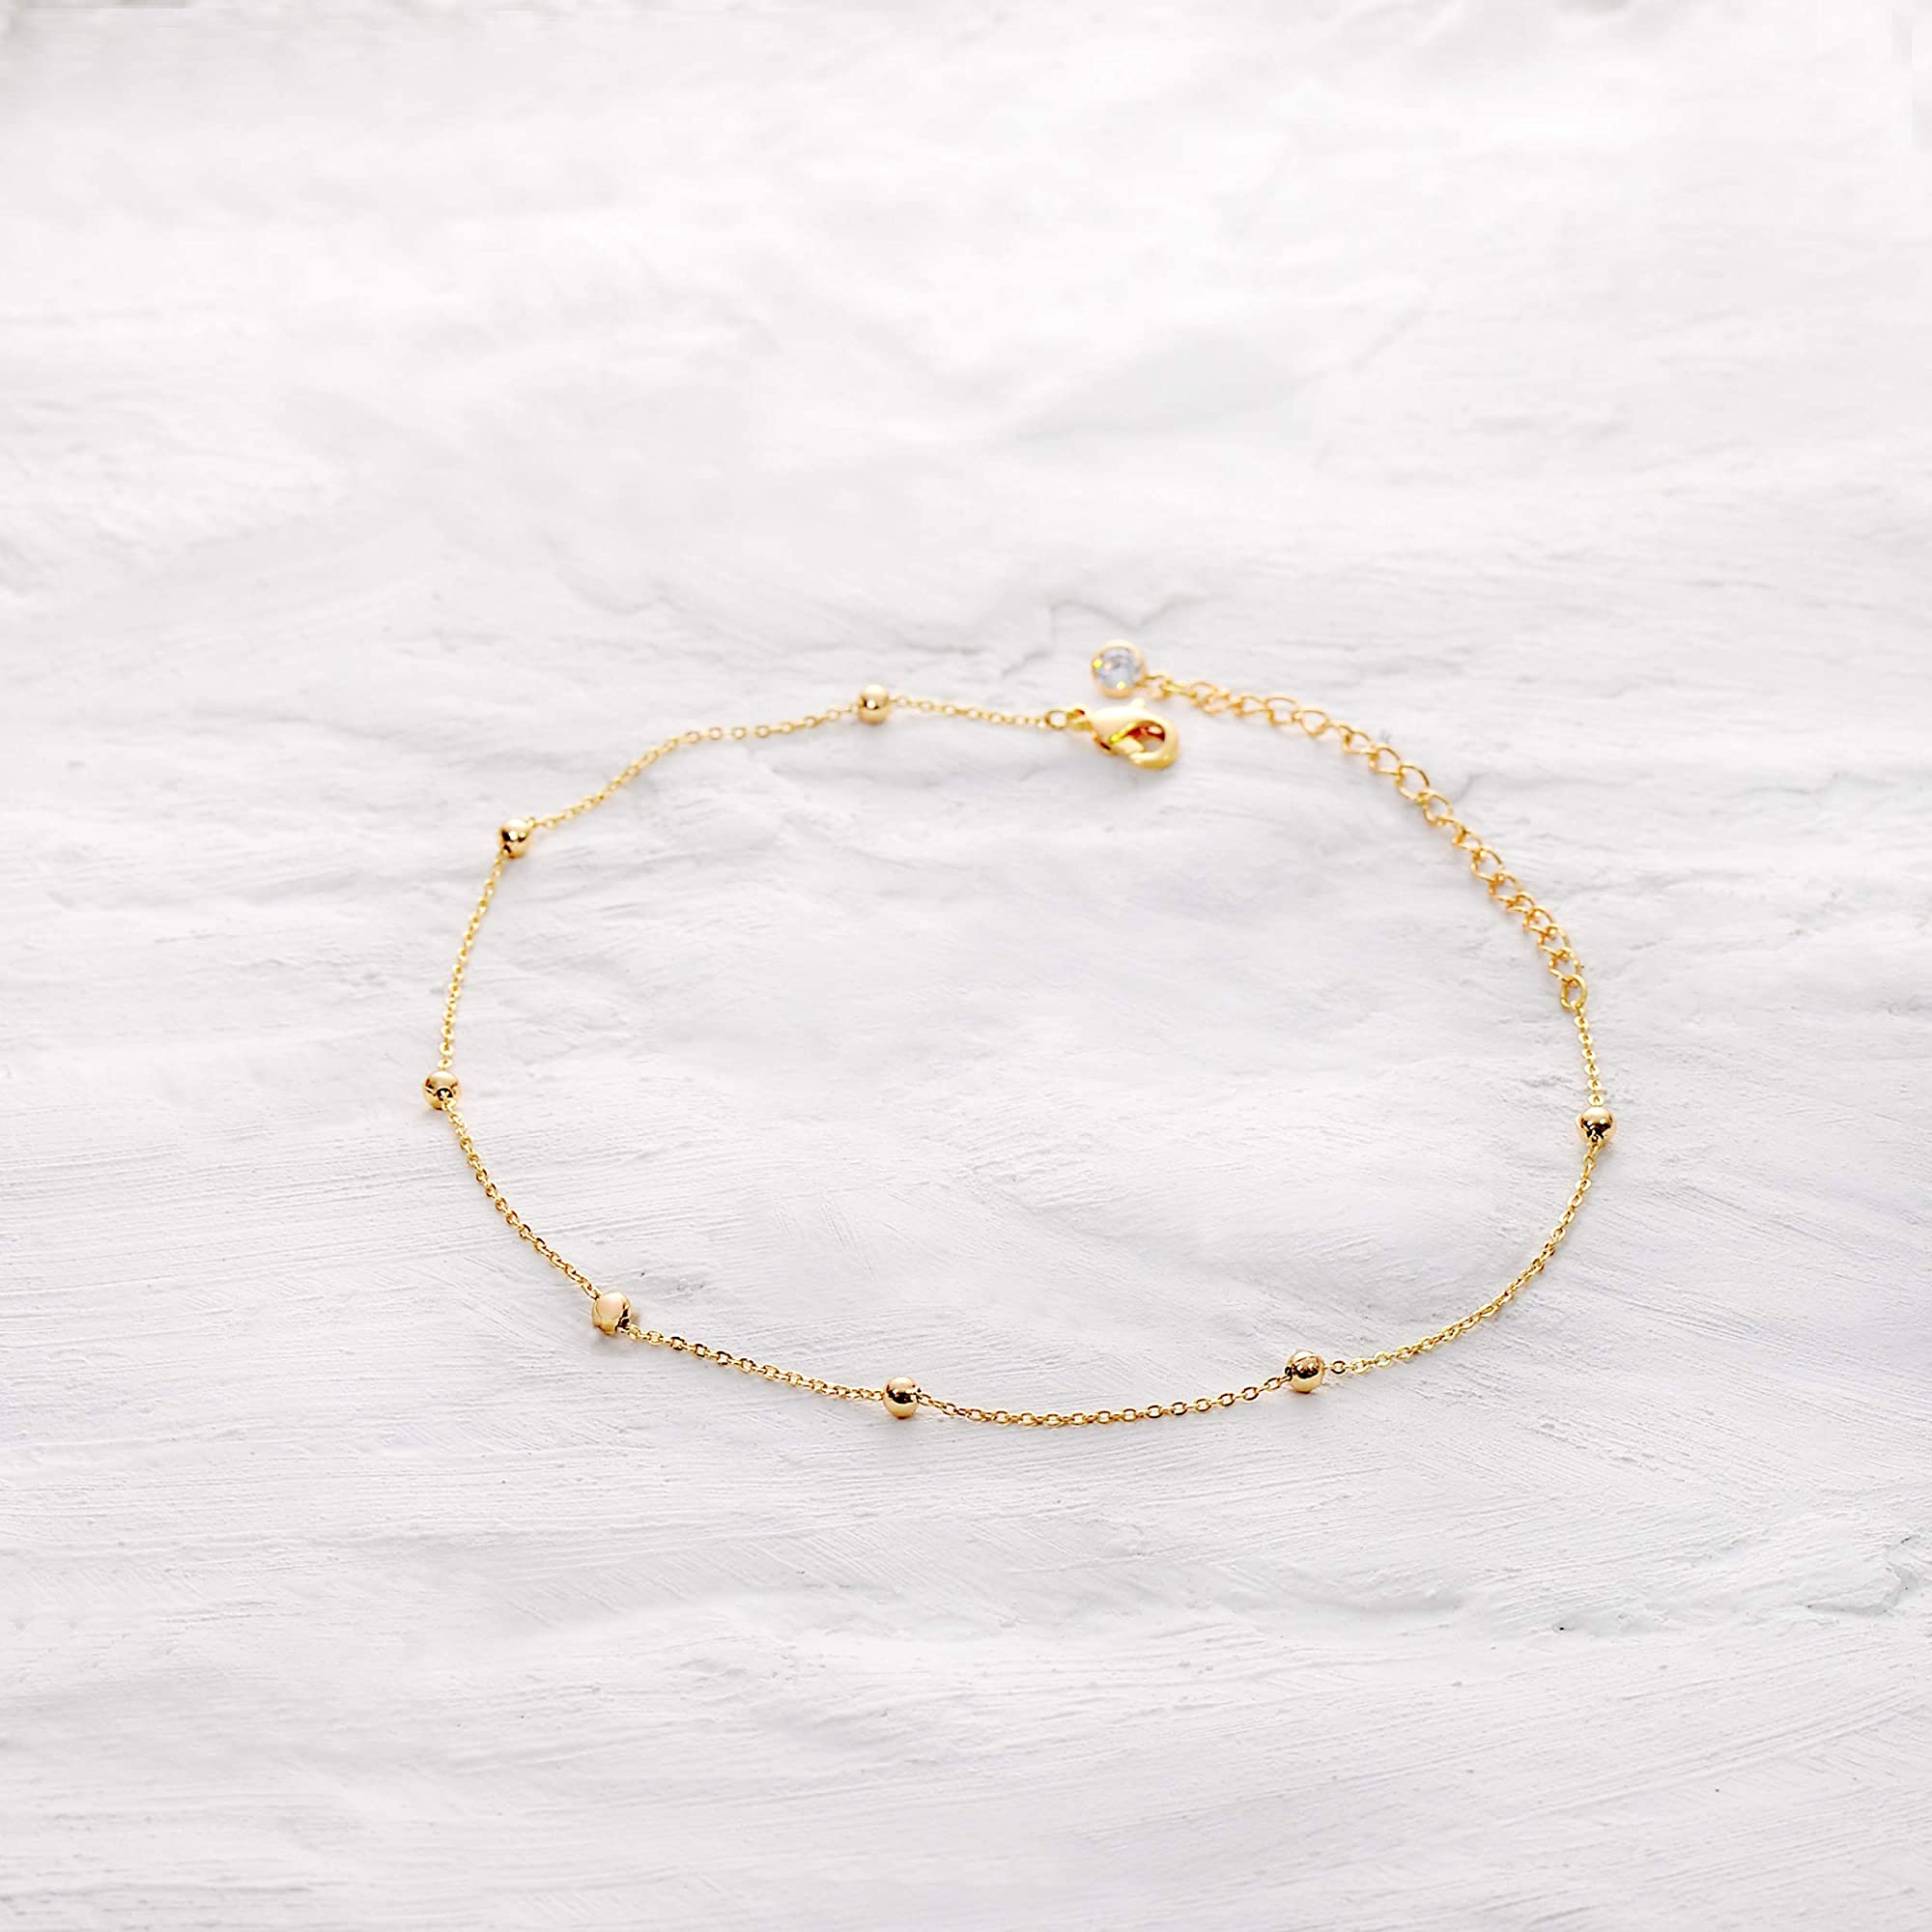 Gold Beaded Chain Anklet For Women